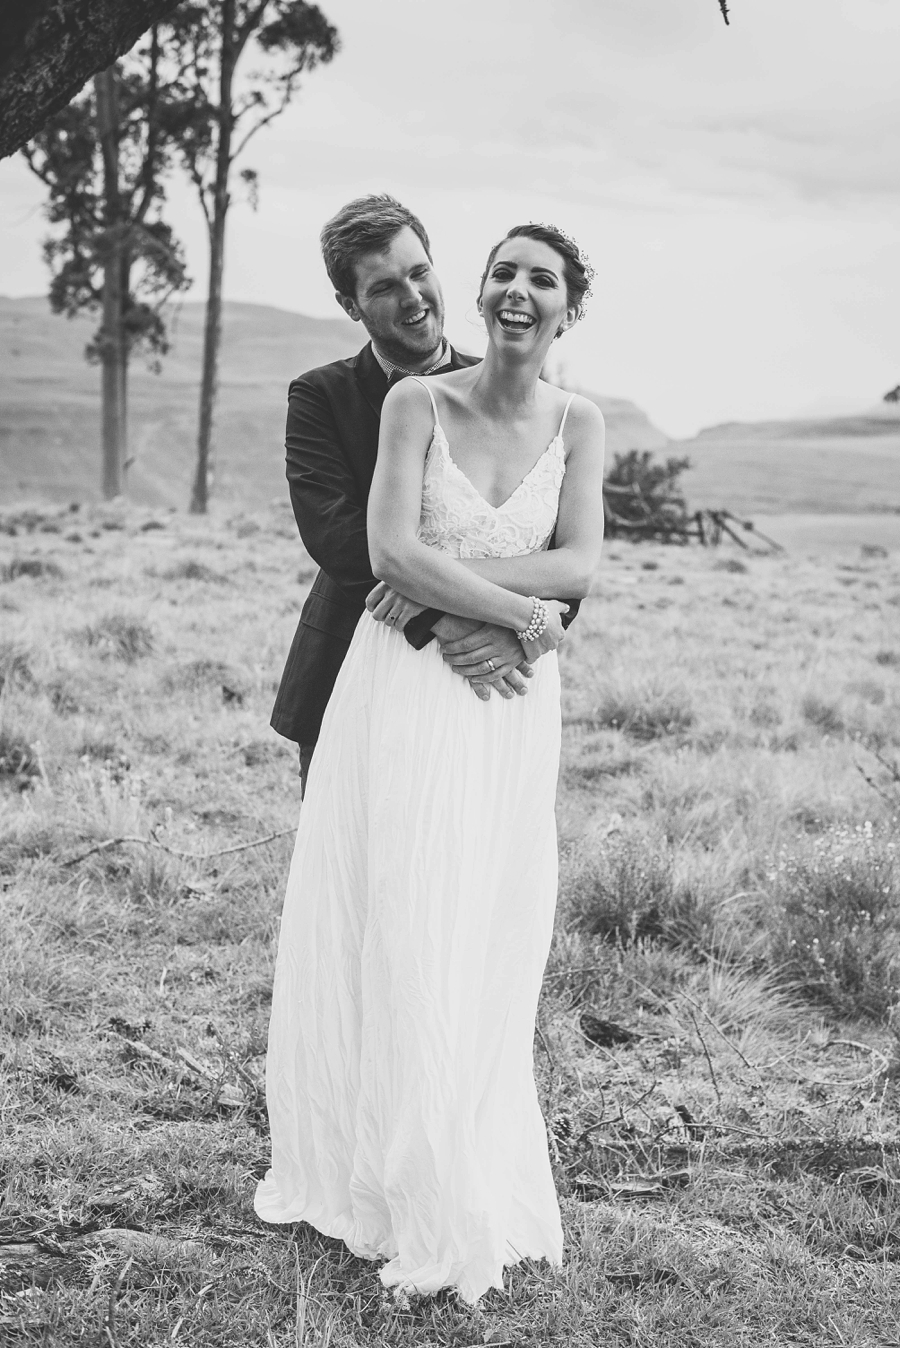 Kate Martens Photography - Burger Wedding, Kamberg_0166